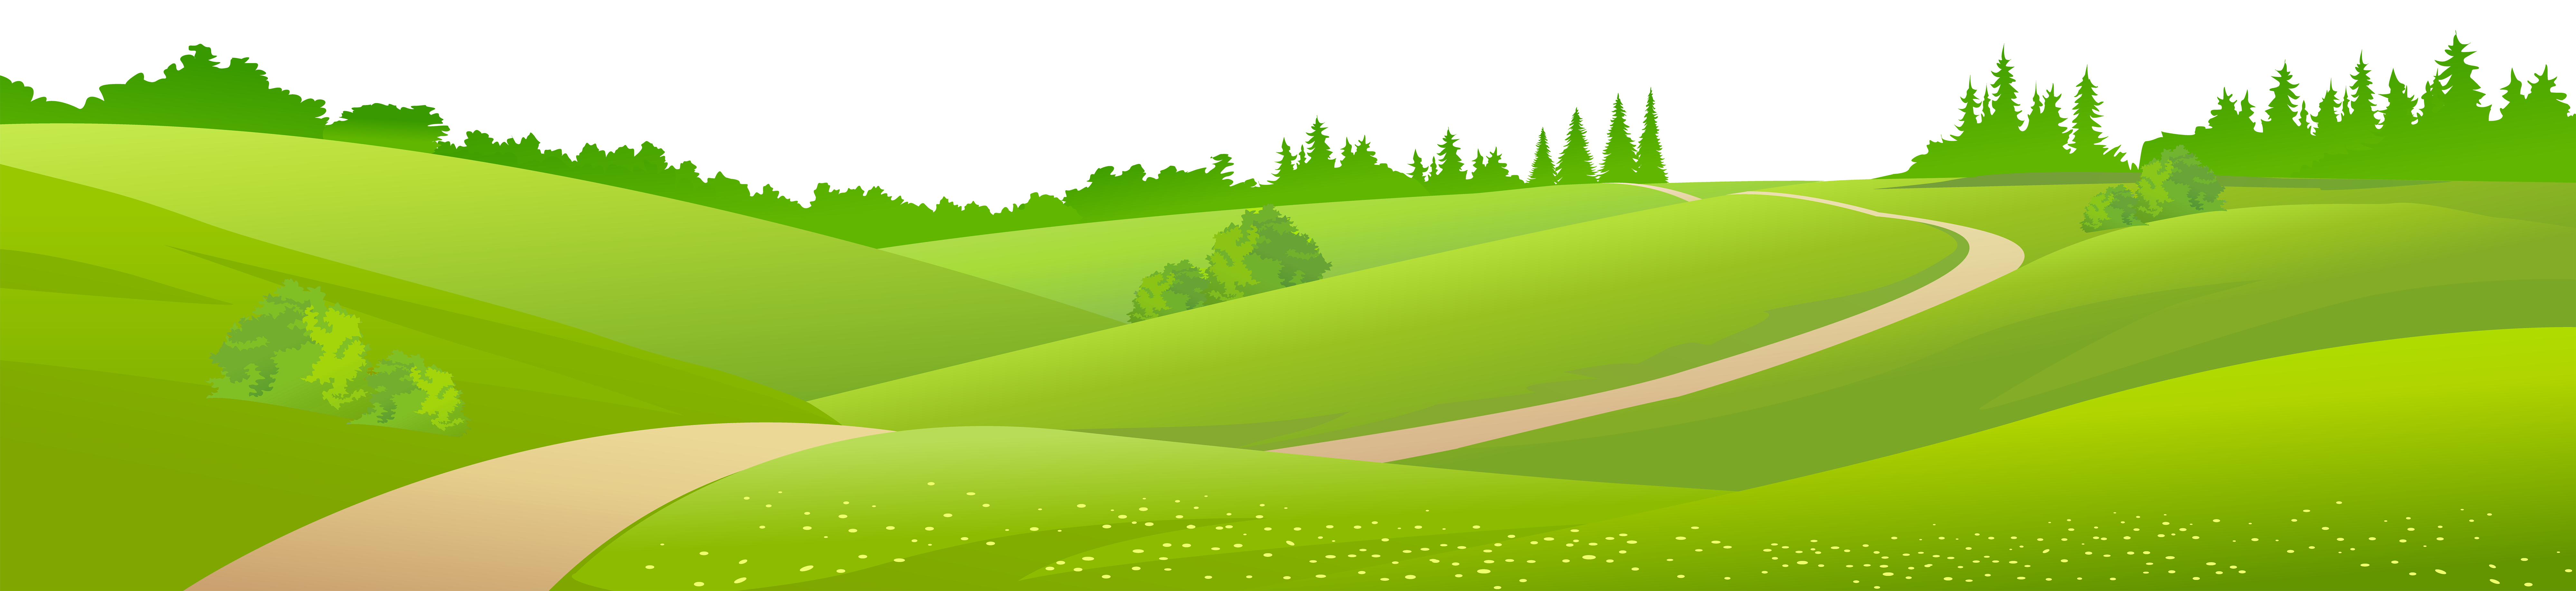 Valley clipart #2, Download drawings